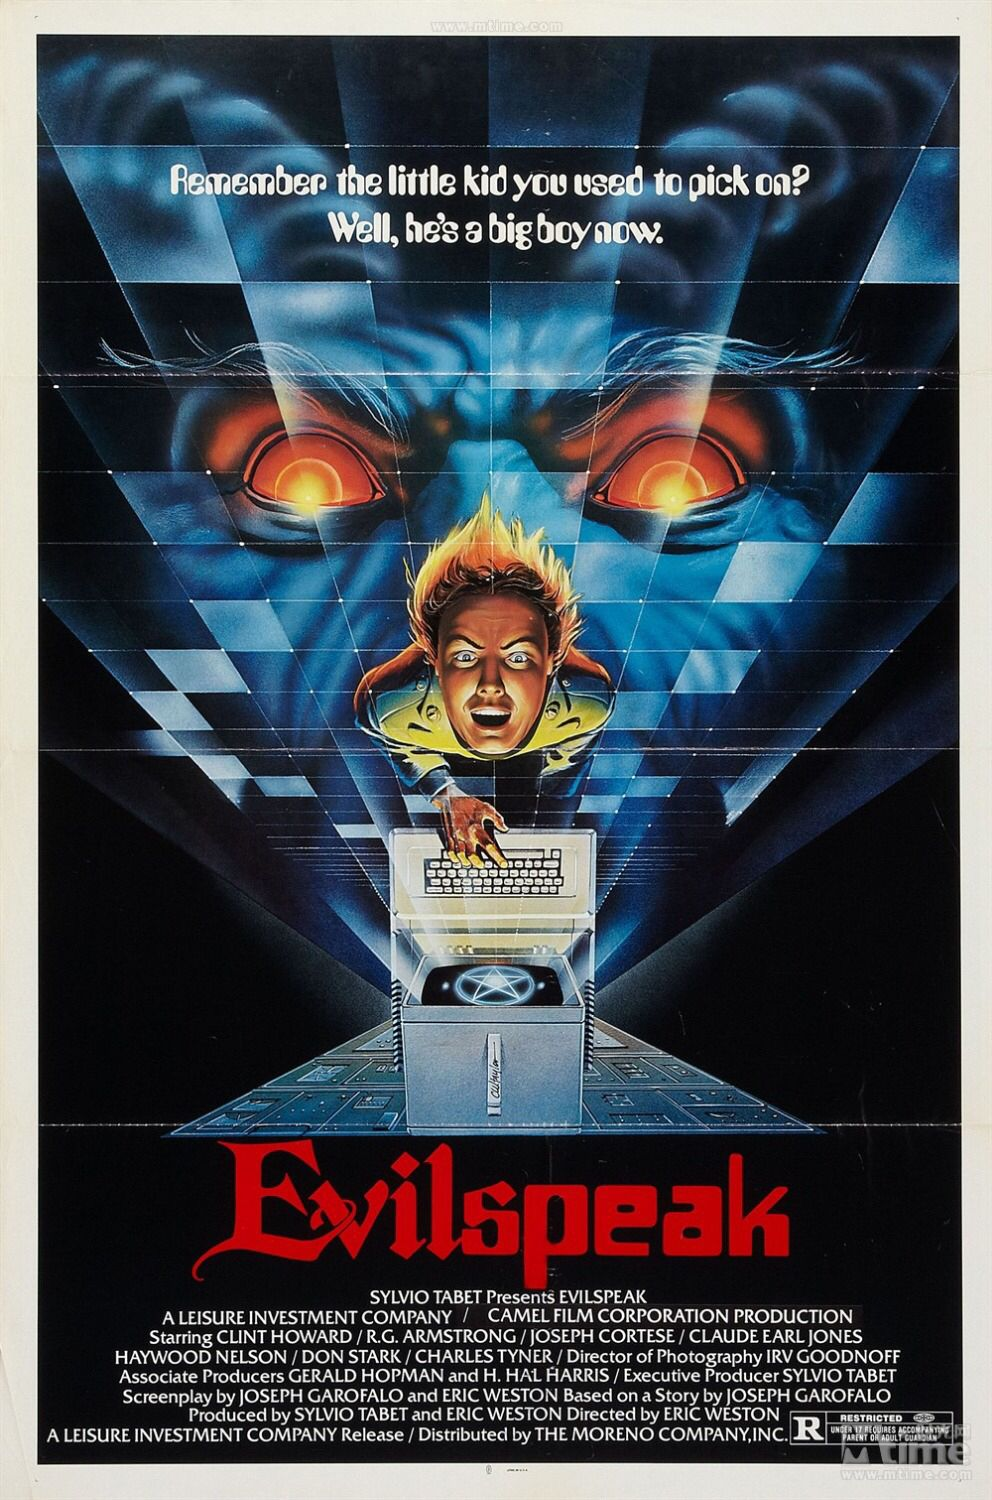 Evil speak (With images) Horror movie posters, Movie posters